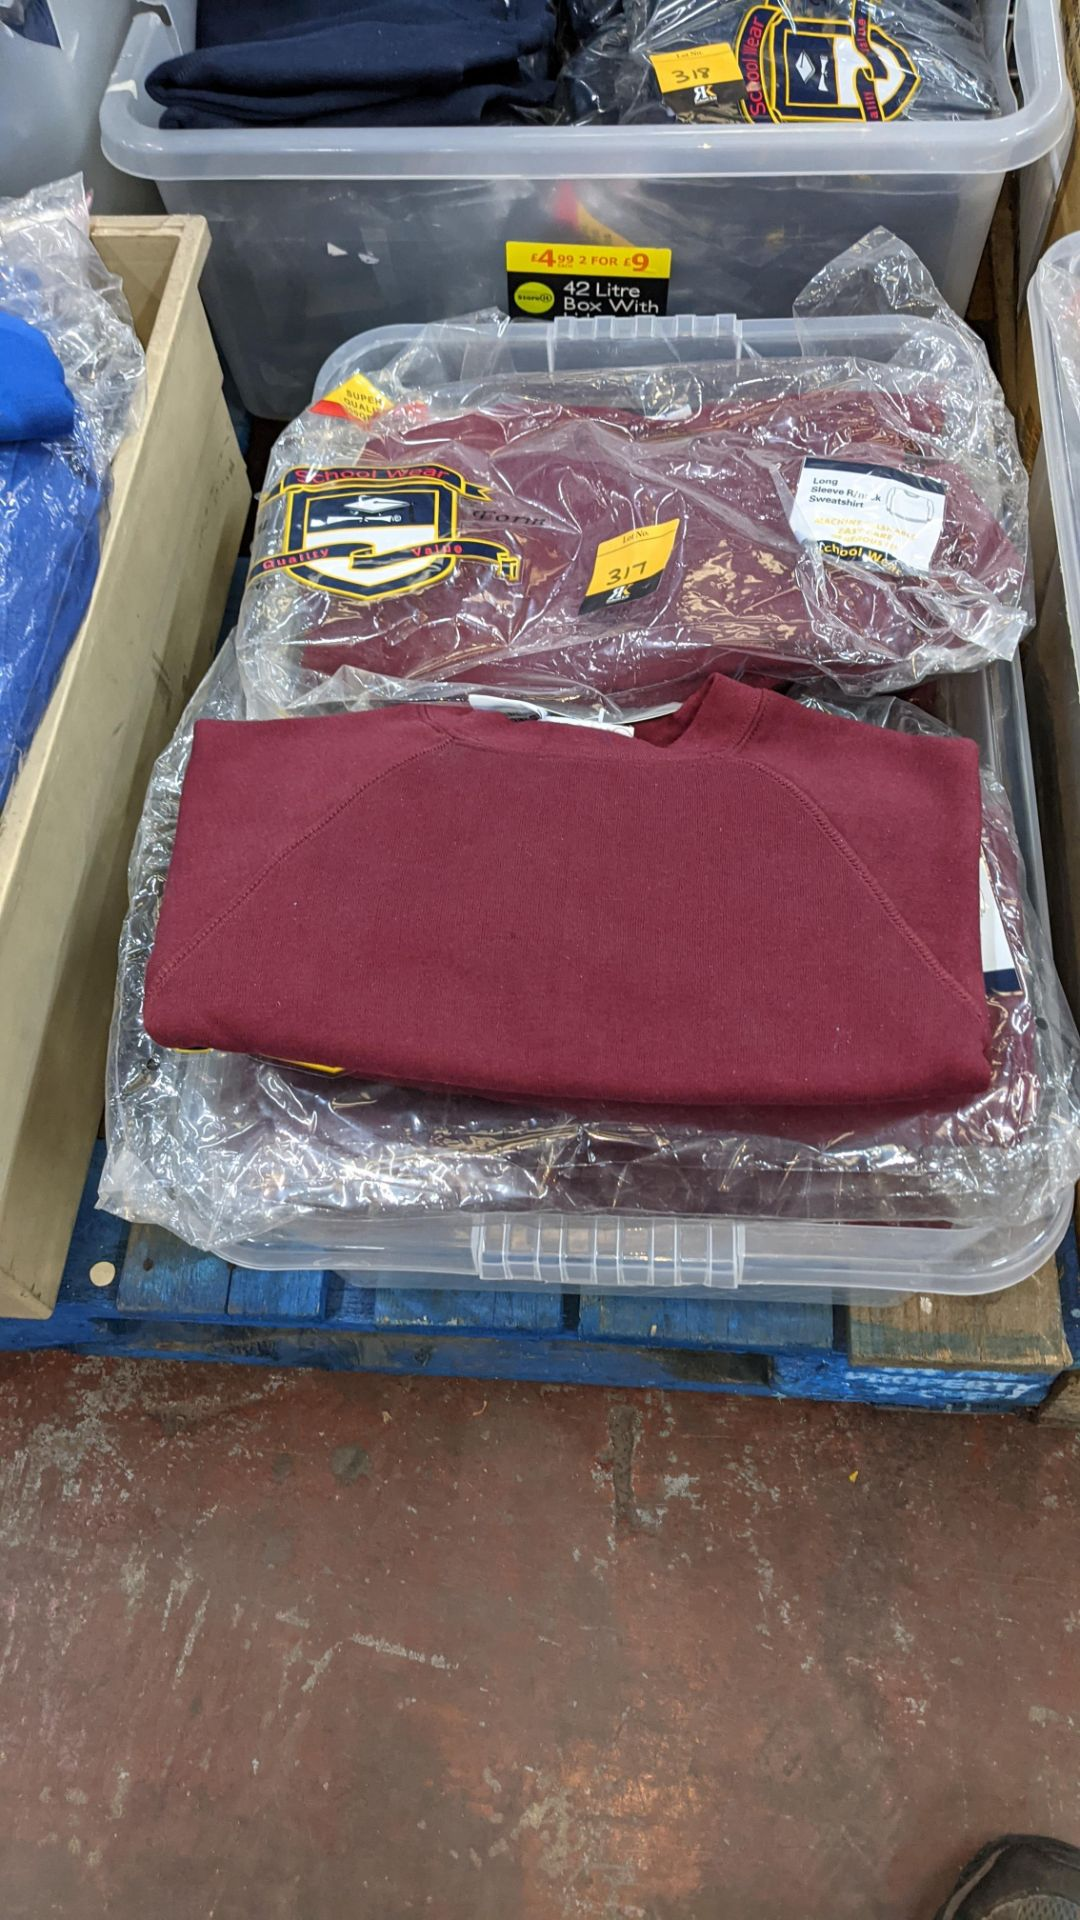 Approx 20 off burgundy children's sweatshirts & similar - the contents of 1 crate. NB crate exclude